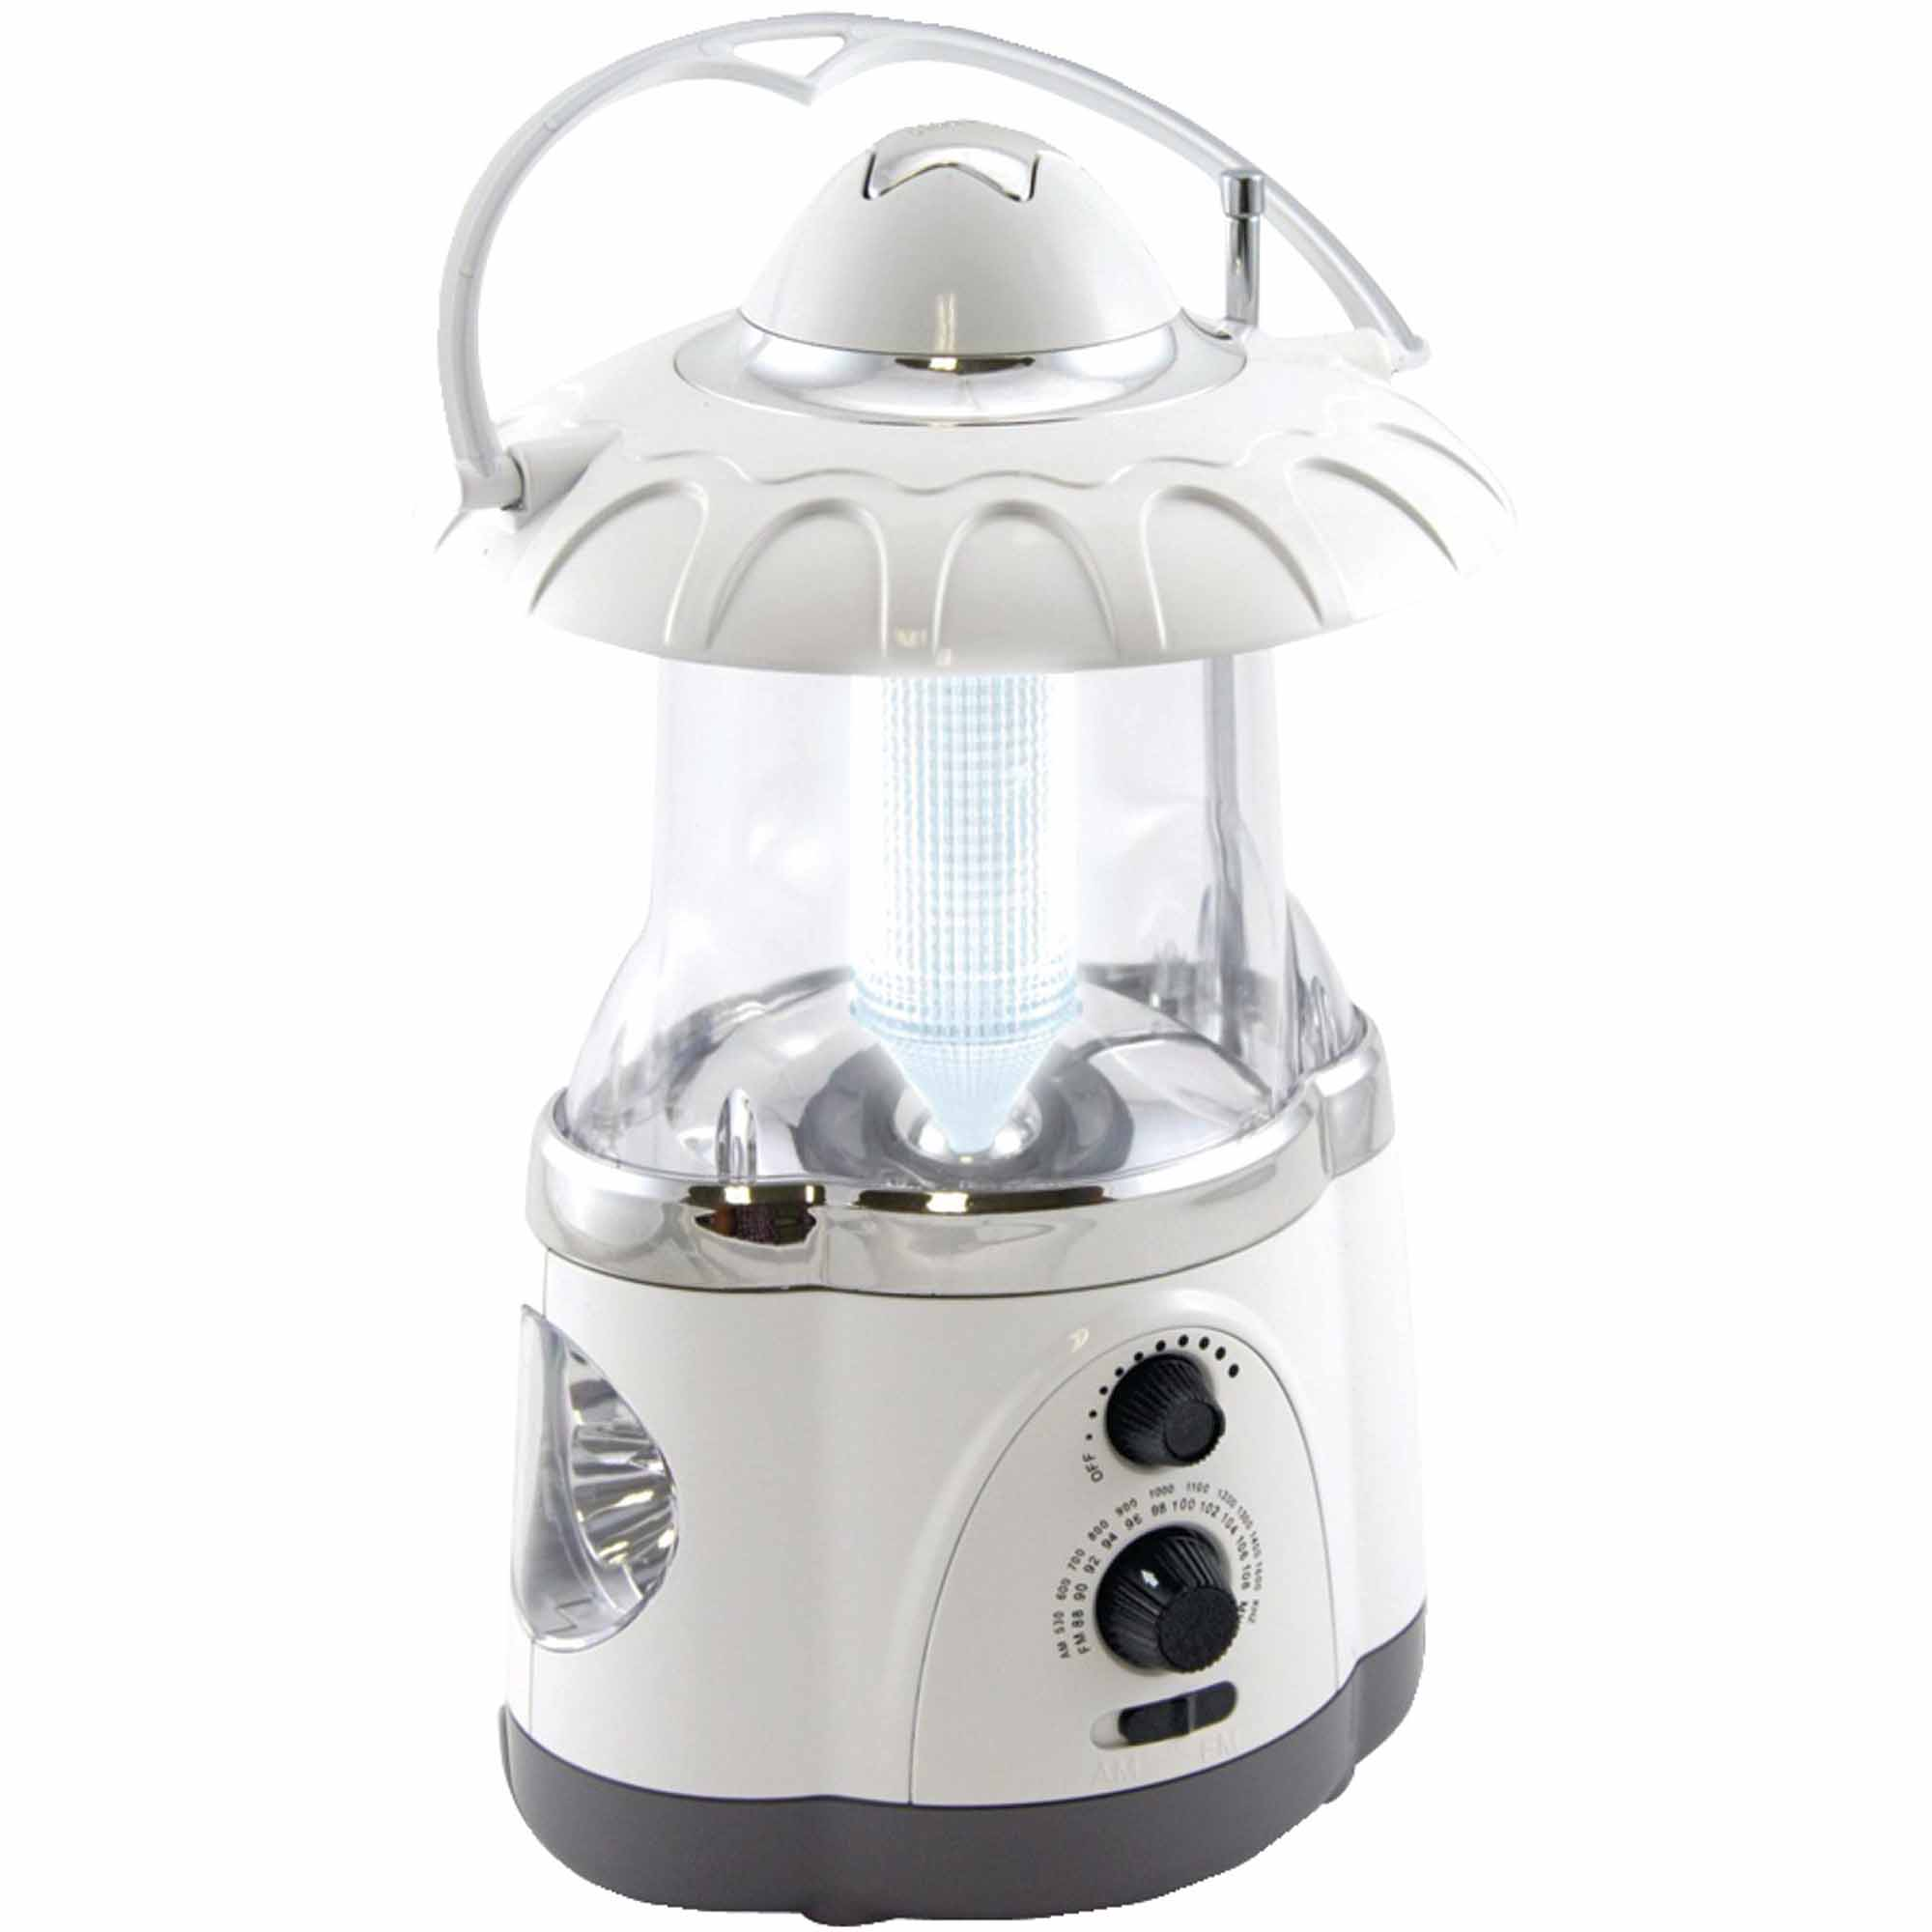 Northpoint 190475 12-LED Lantern with 4-LED Flashlight and AM/FM Radio, White